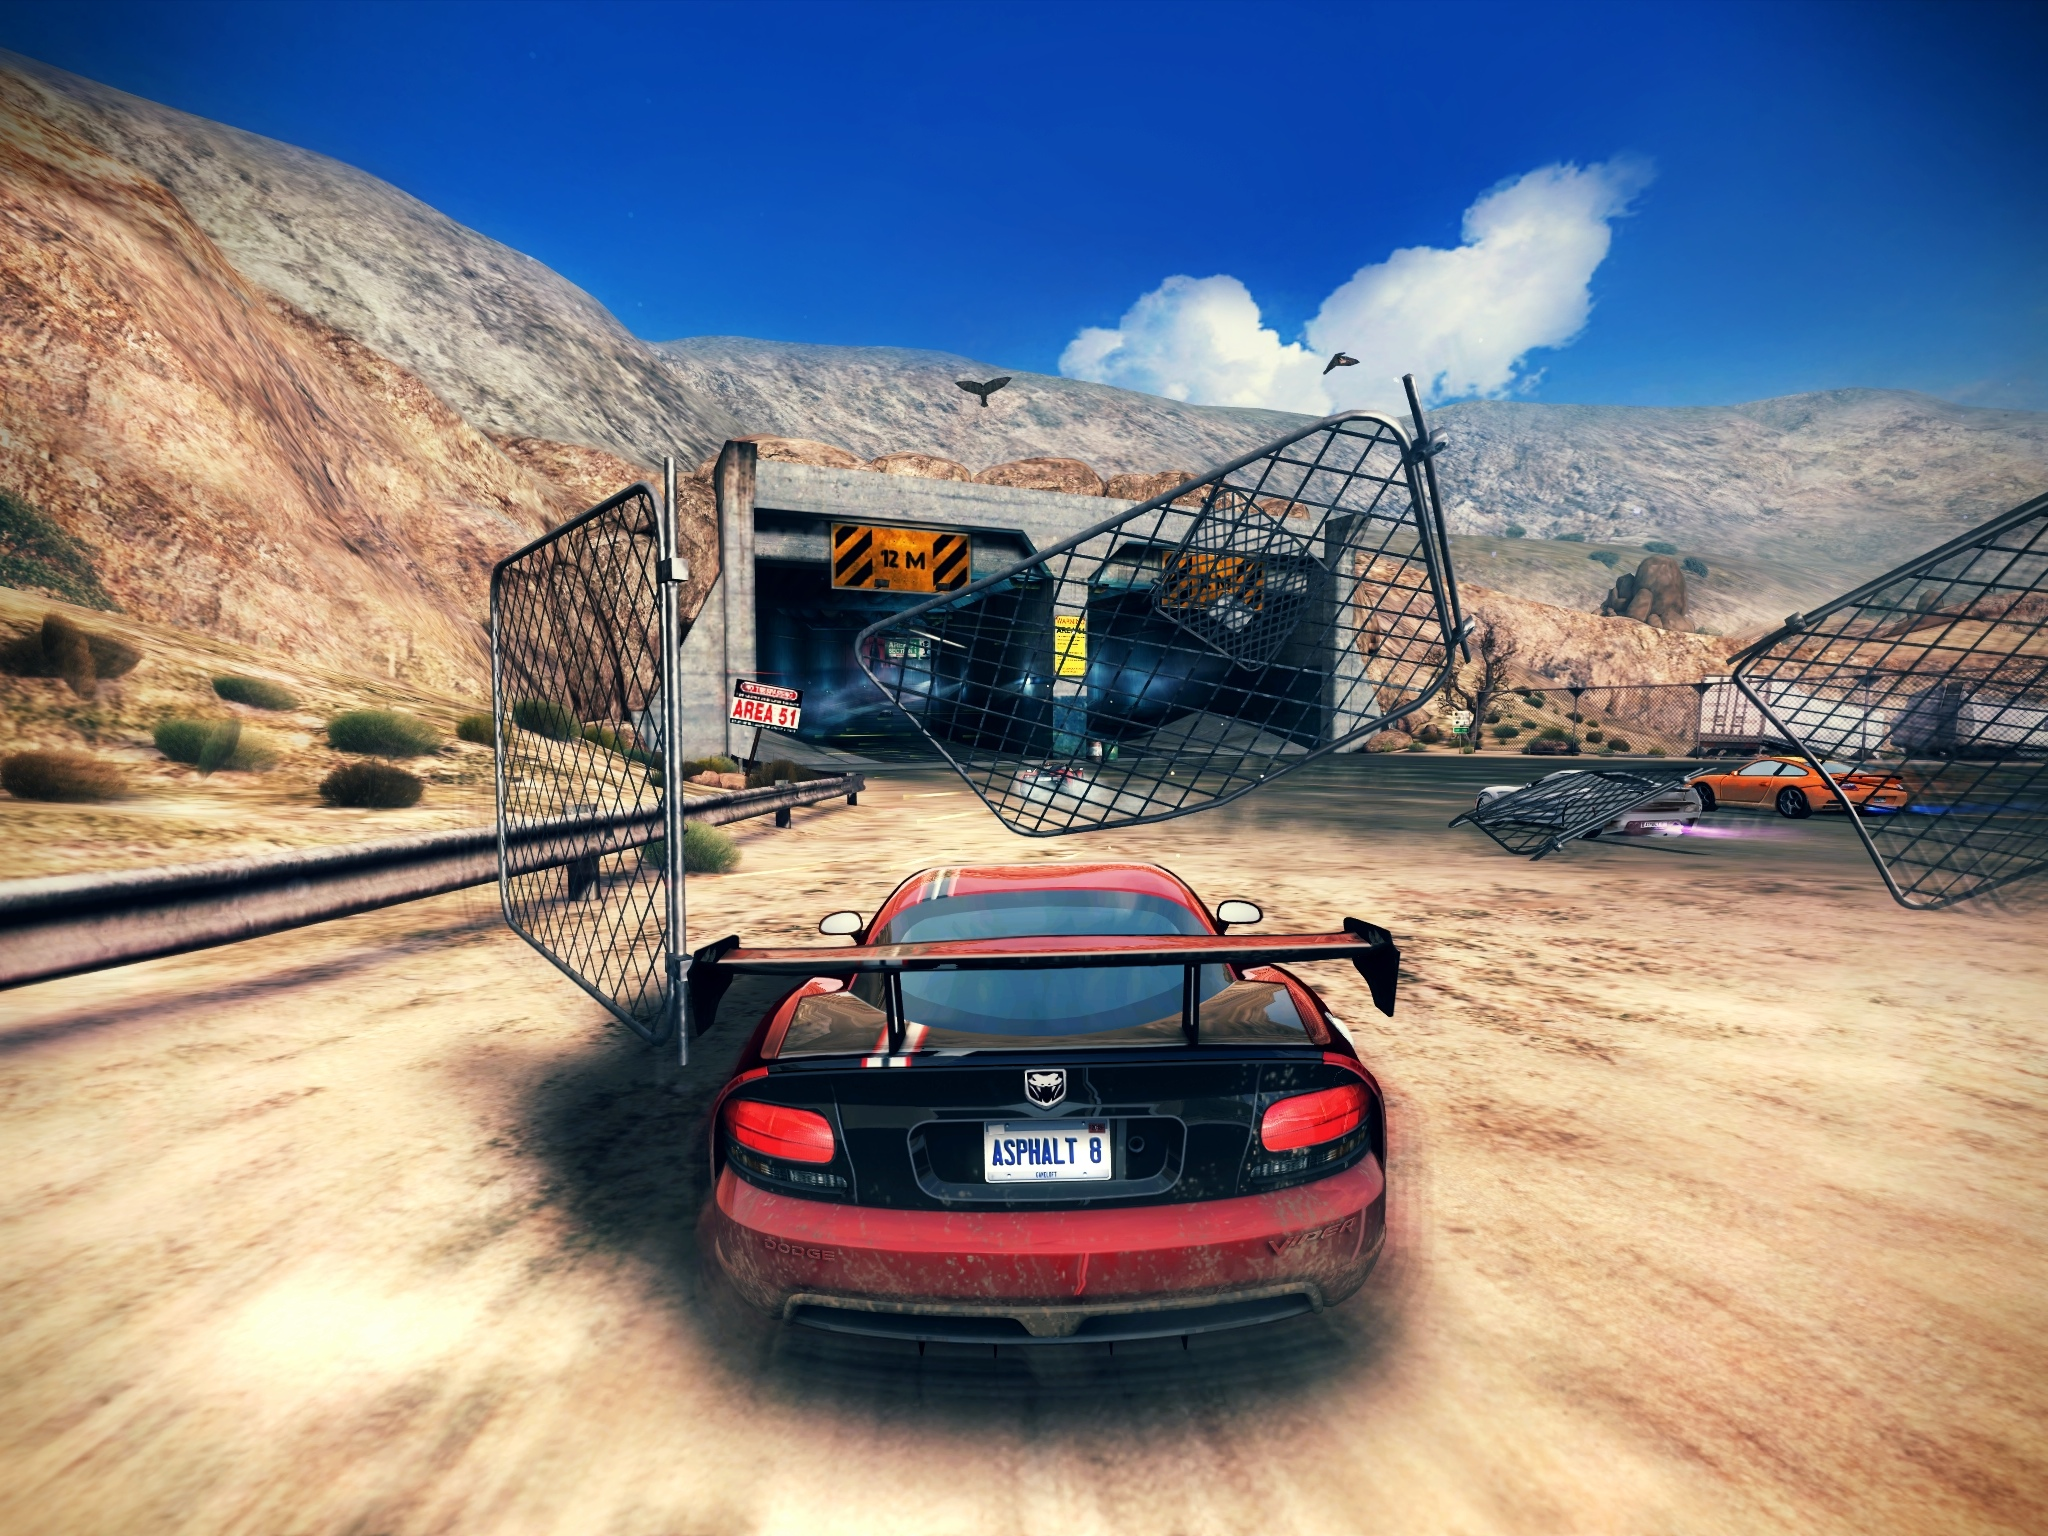 Asphalt8_screen_2048x1536_070_V02